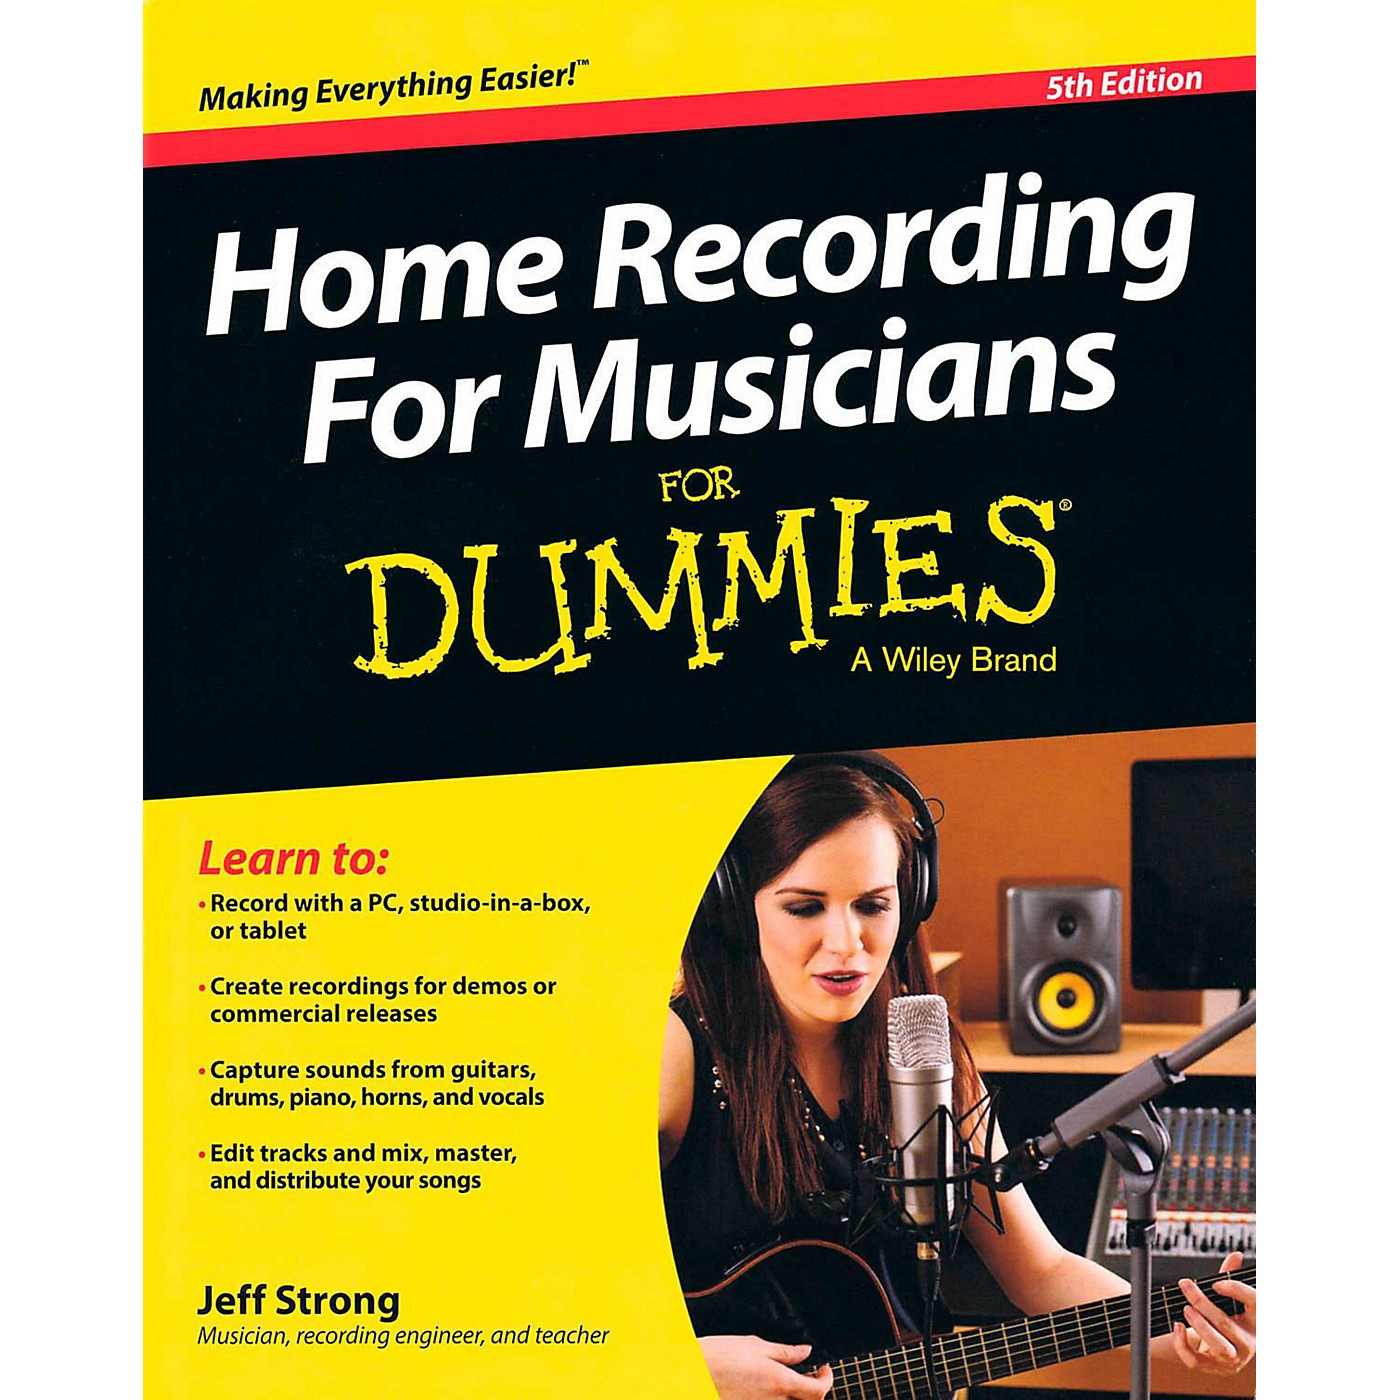 Hal Leonard Home Recording For Musicians For Dummies 5th Edition thumbnail